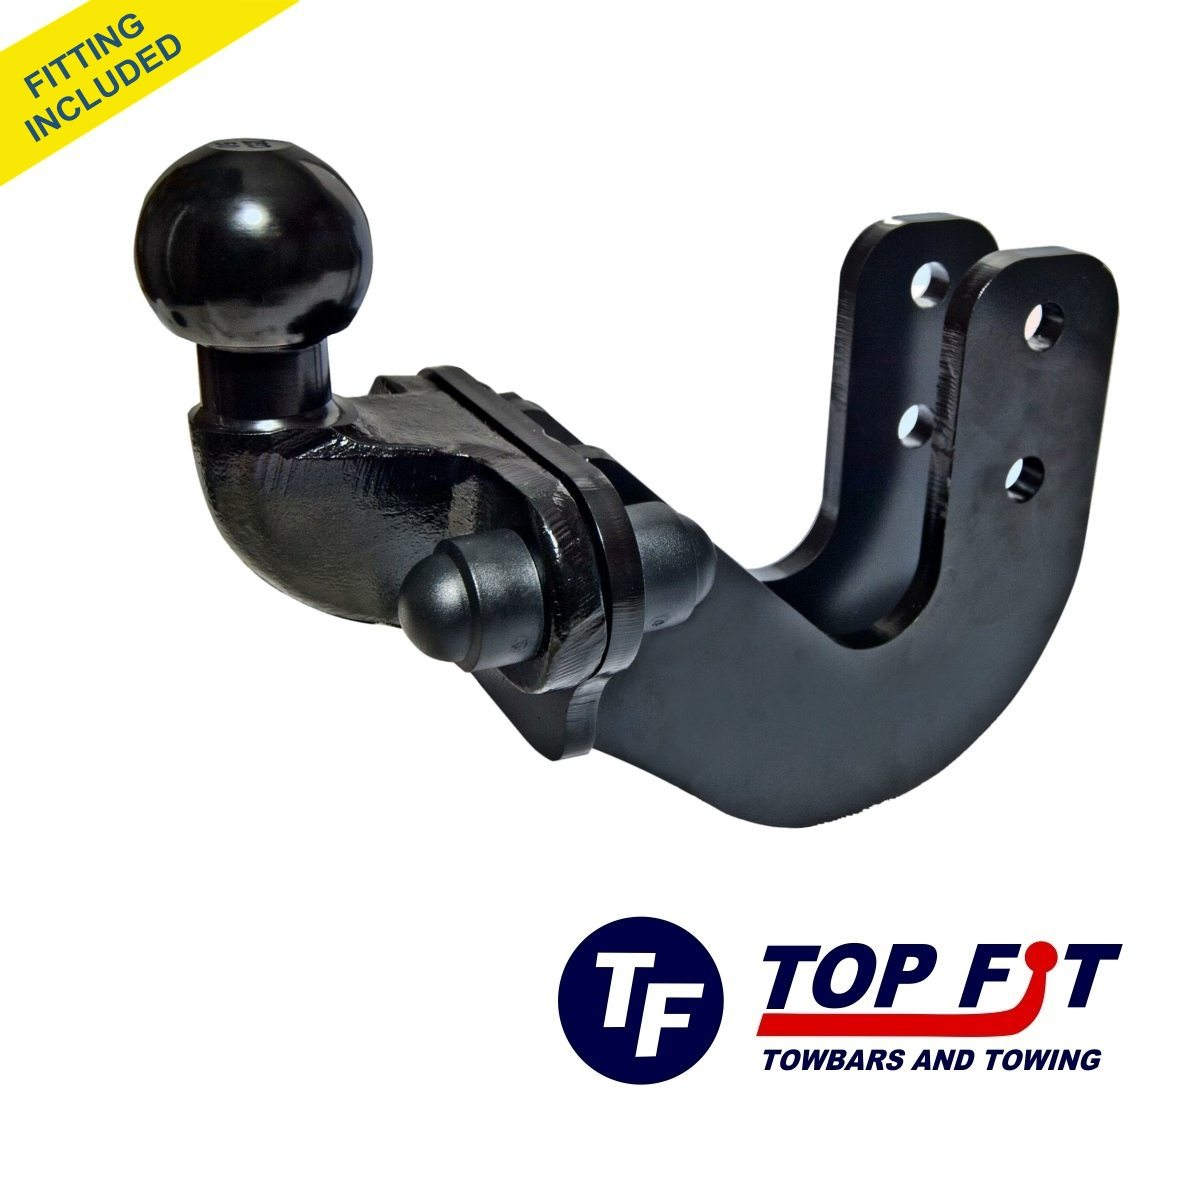 Peugeot 207 Towbar Wiring Vehicle Specific 134 Page 5 Top Fit Towbars And Towing 5008 2010 To 2017 Flange